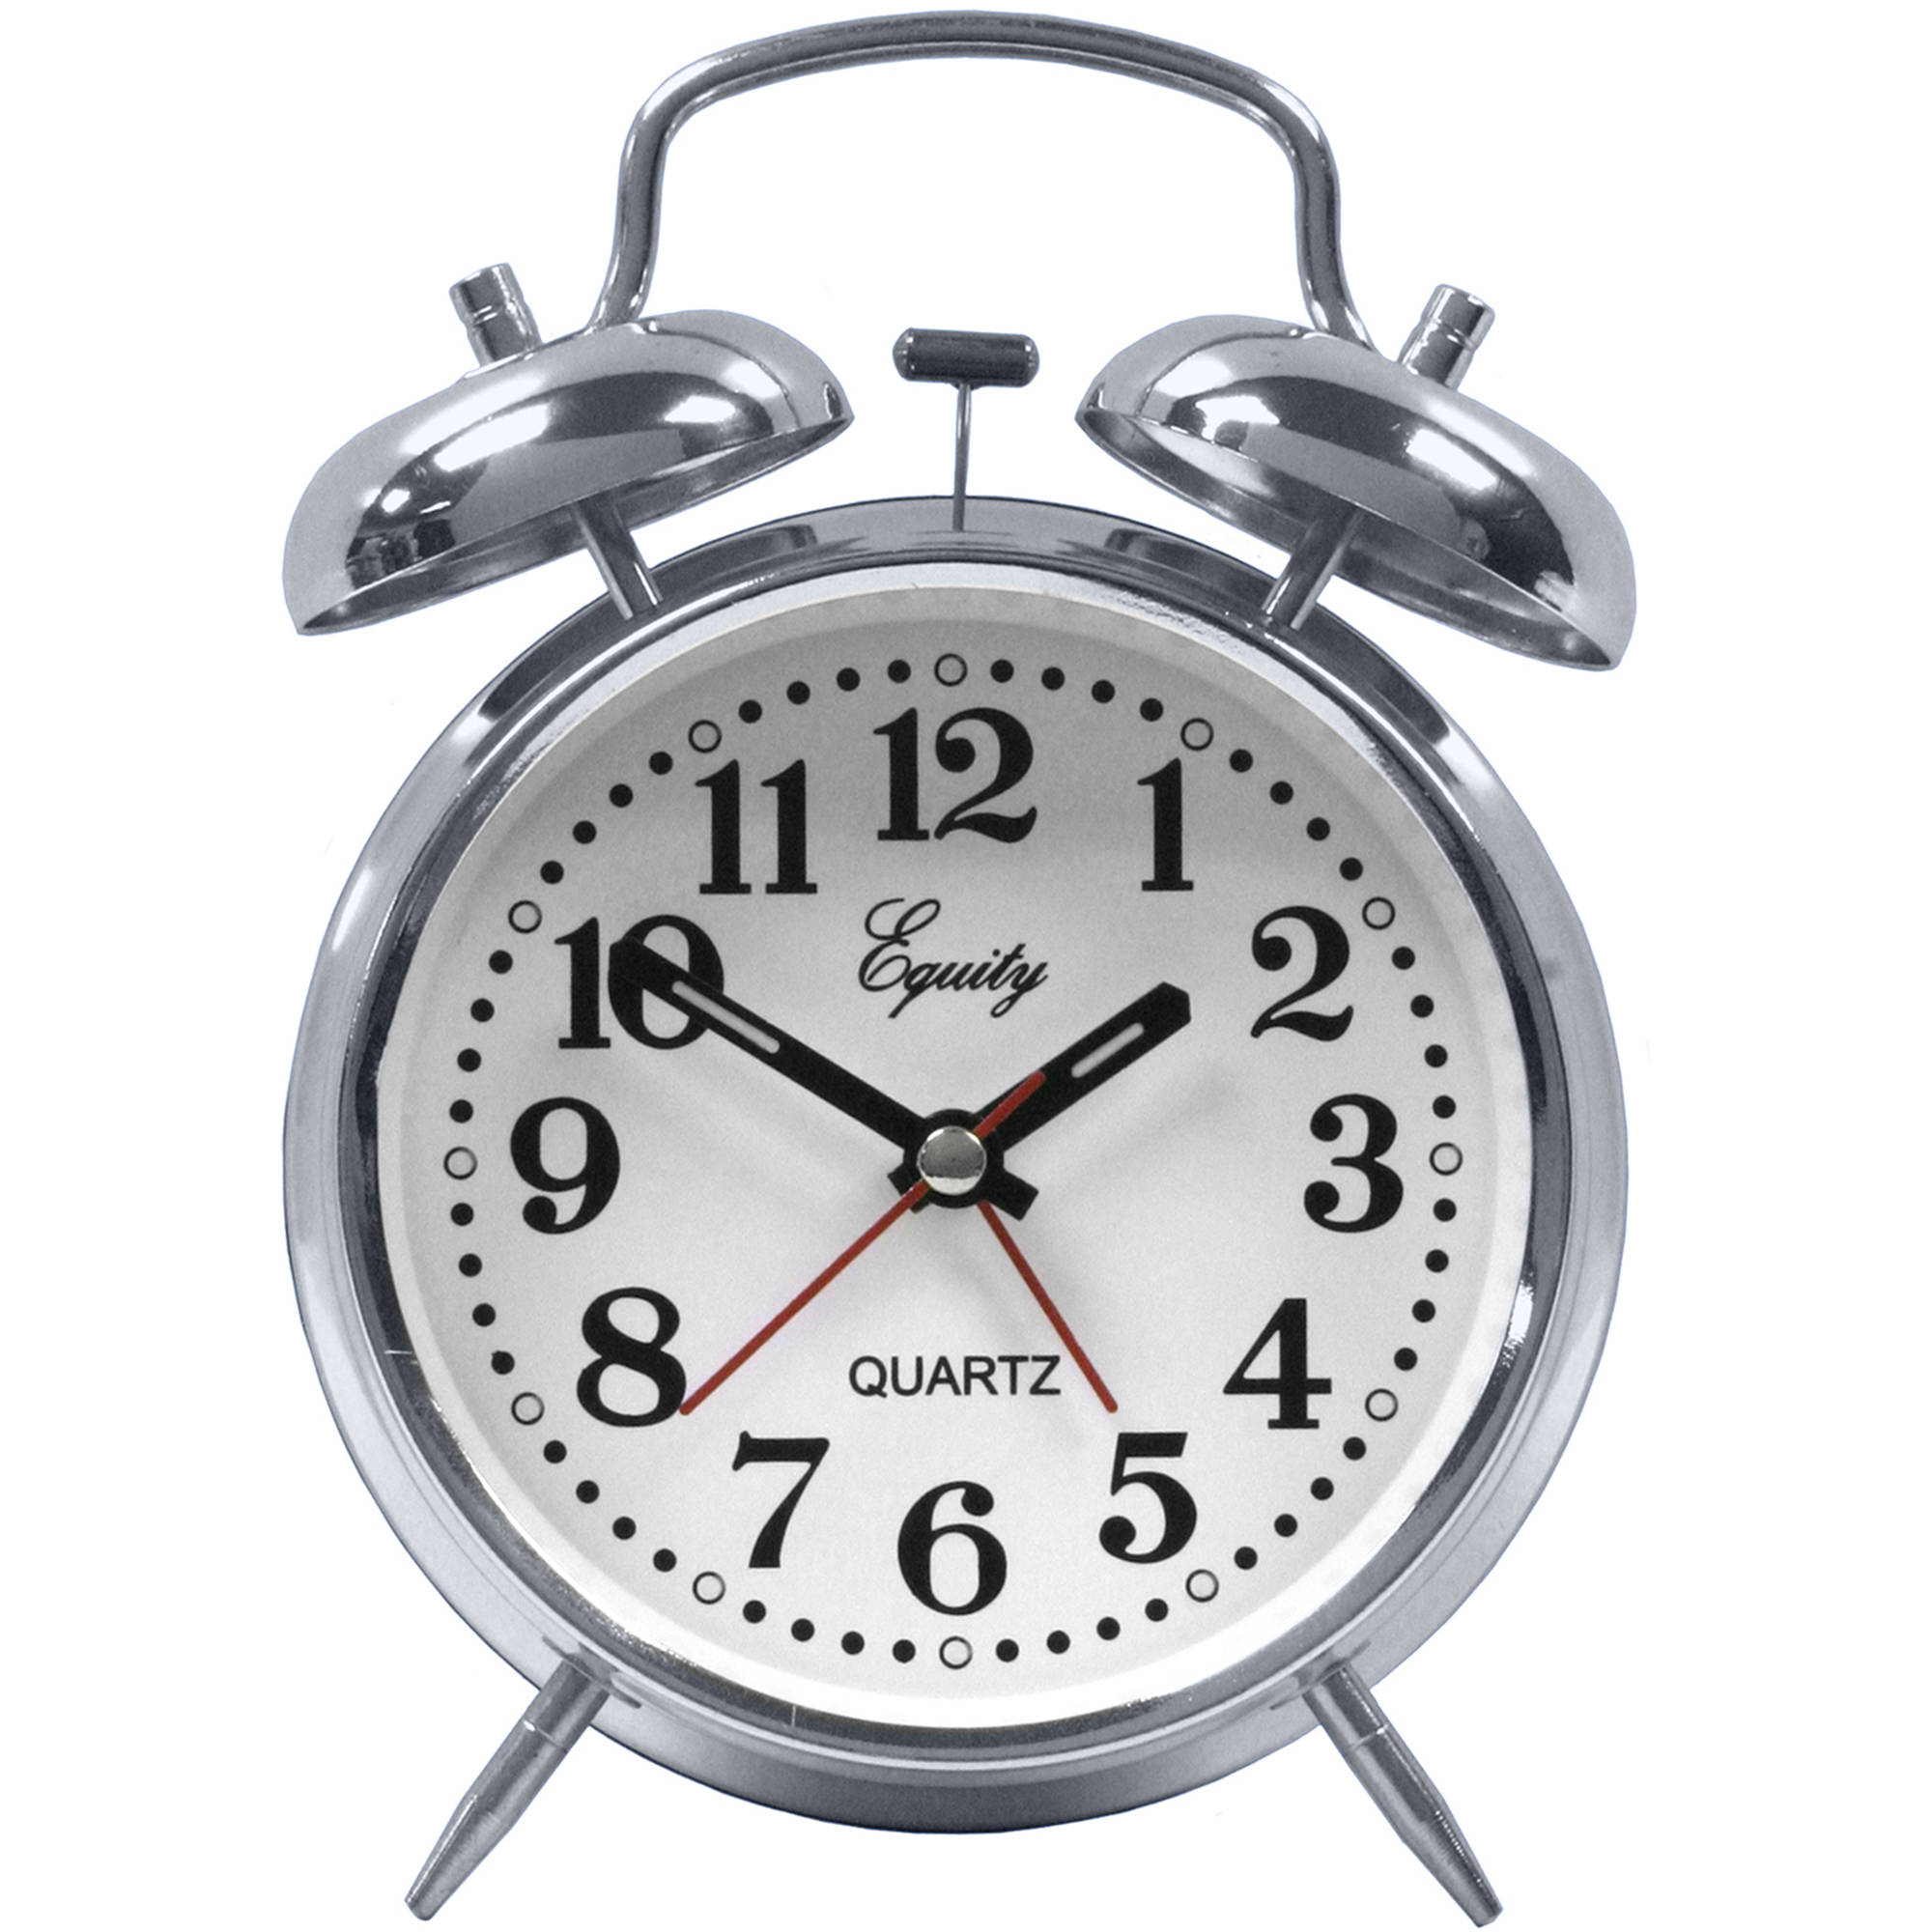 La Crosse Technology Equity Analog Twin Bell Alarm Clock by La Crosse Technology